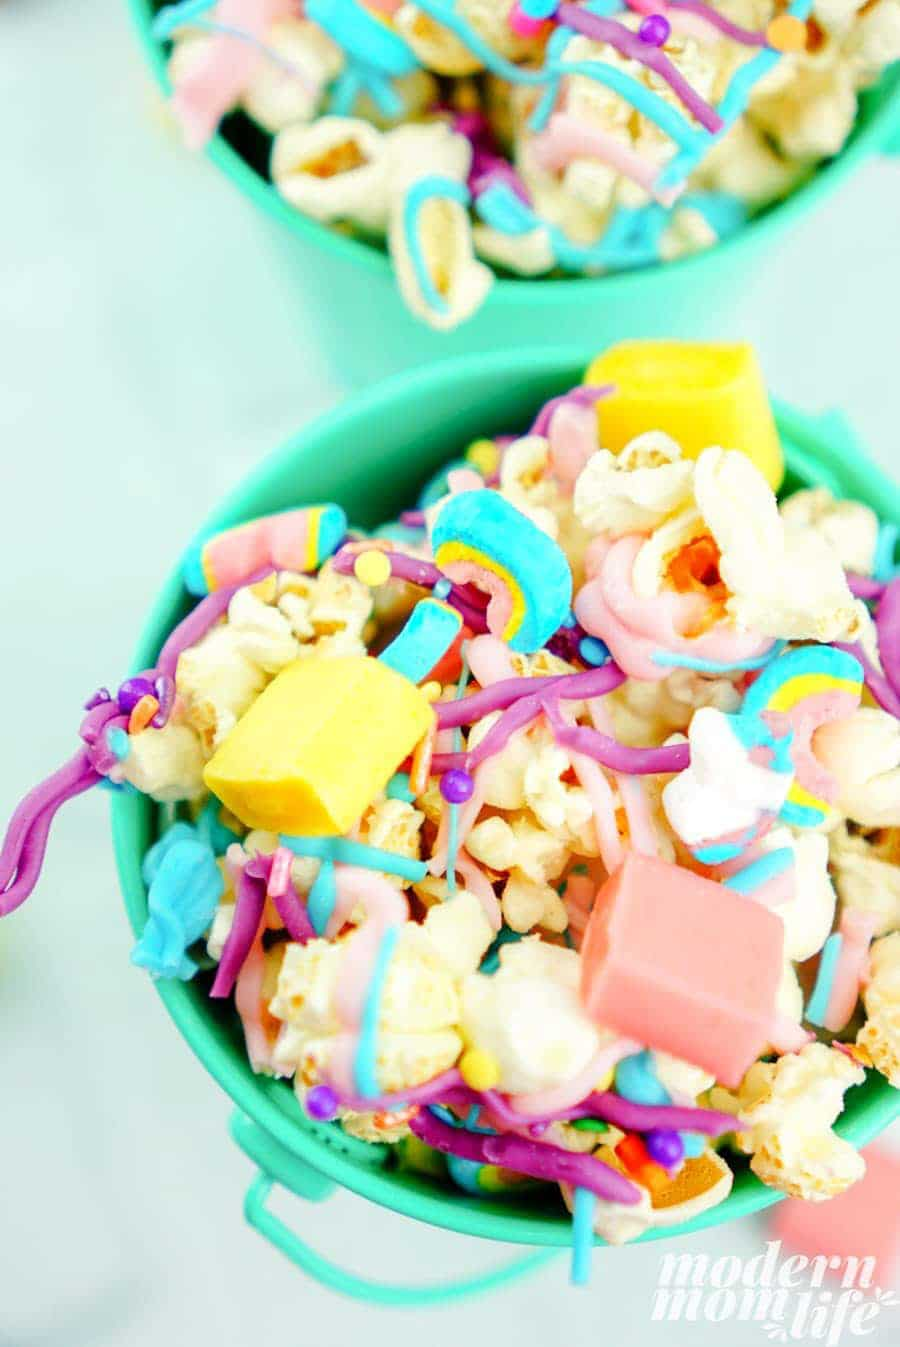 Green bucket filled with colorful unicorn popcorn snack